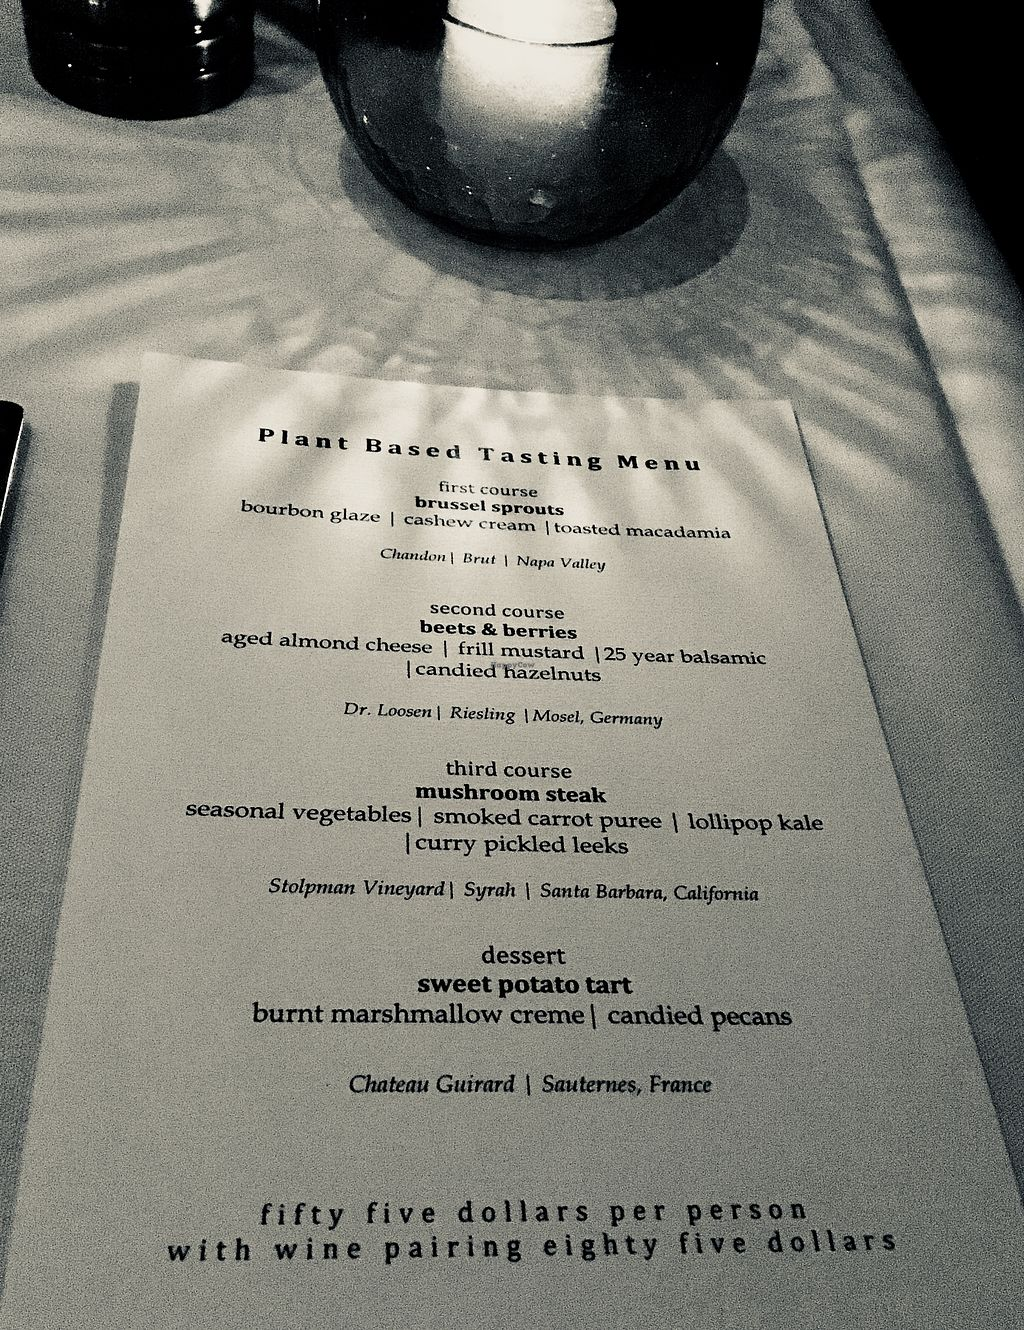 """Photo of California Market at Pacific's Edge  by <a href=""""/members/profile/Clean%26Green"""">Clean&Green</a> <br/>Plant based tasting menu (fancy!) <br/> January 17, 2018  - <a href='/contact/abuse/image/103003/347436'>Report</a>"""